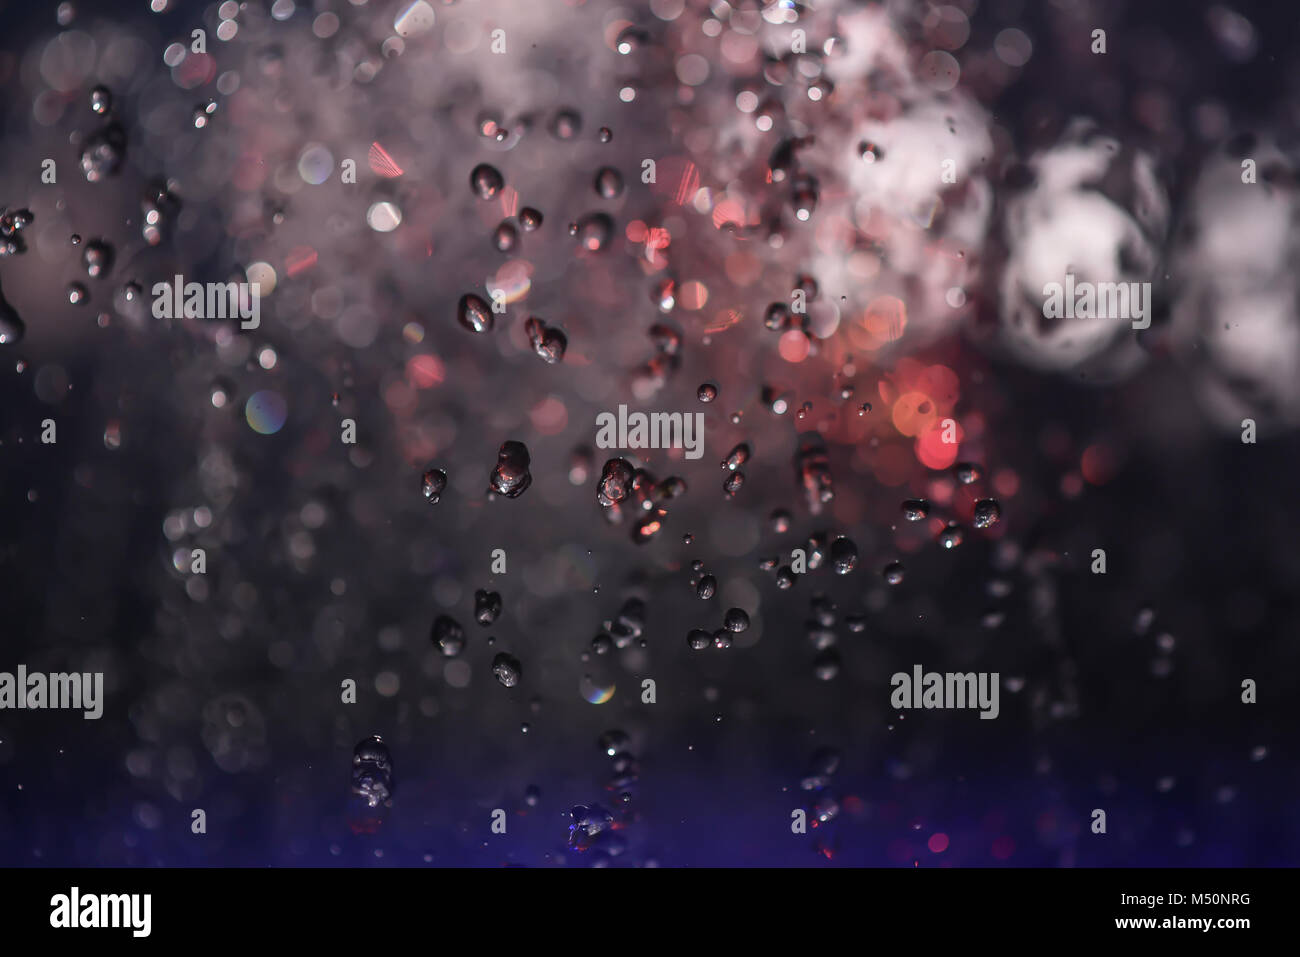 Multicolored spray fountain at night in the club - Stock Image